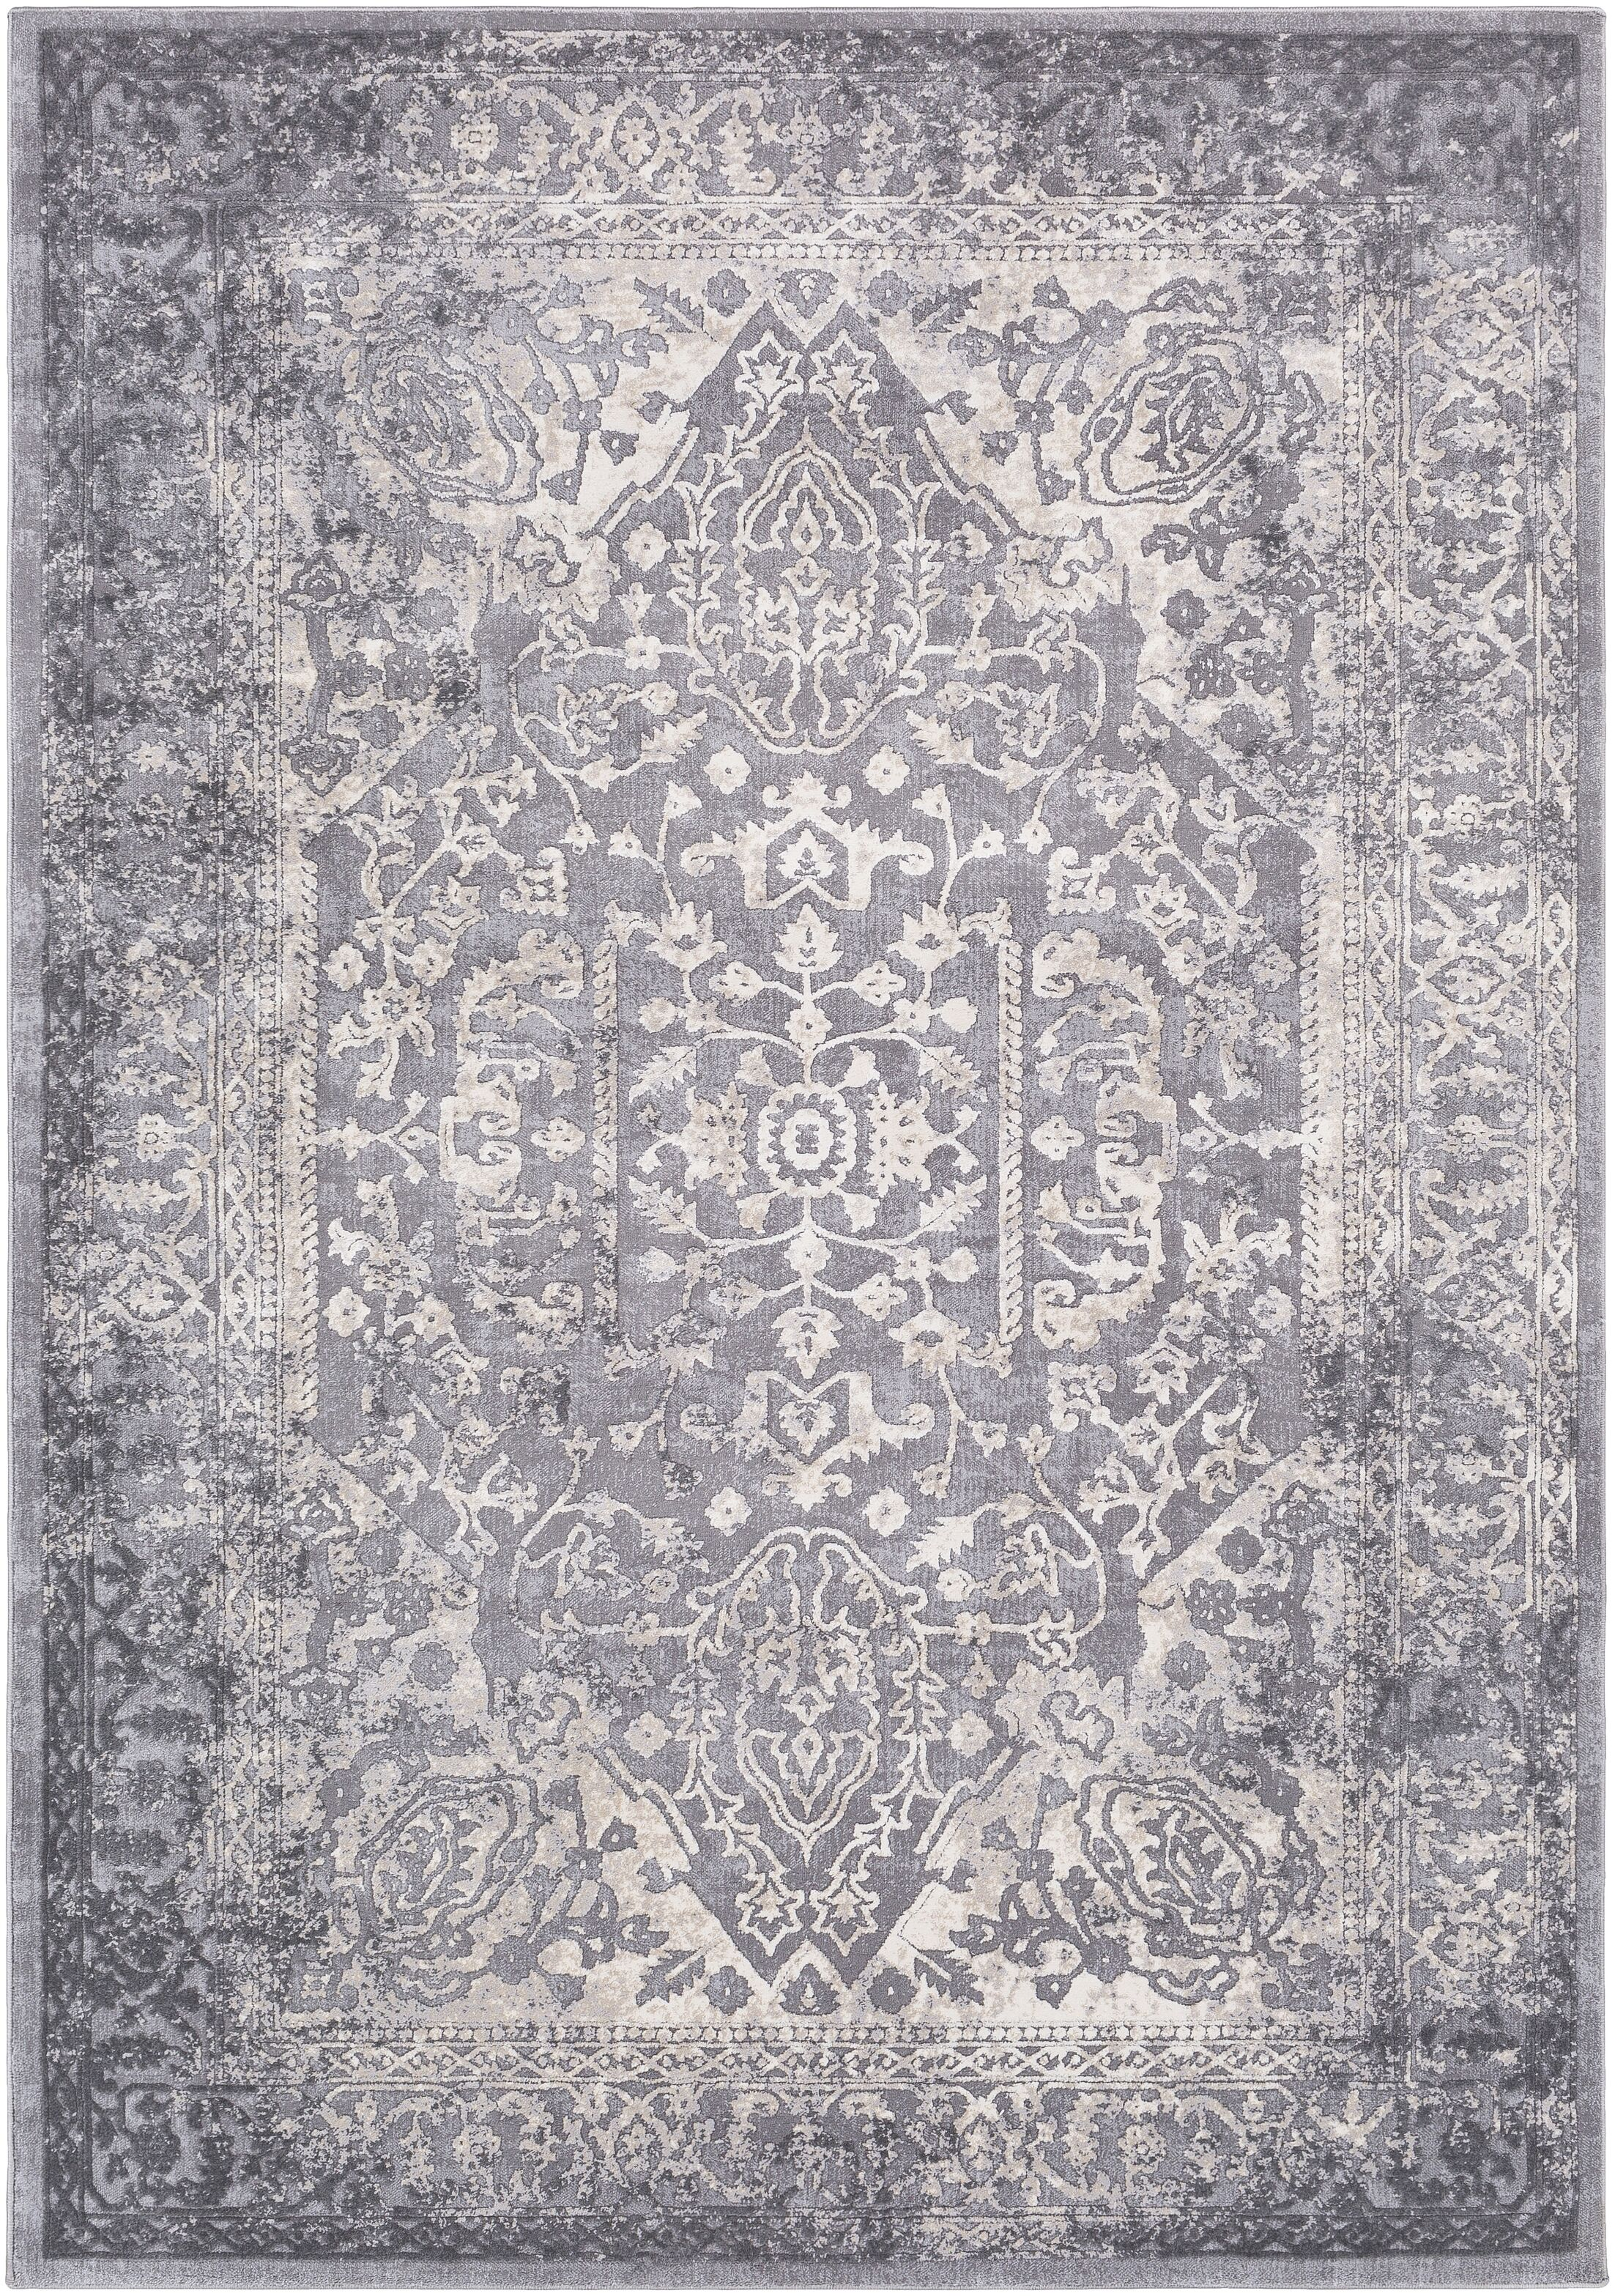 Thissell Vintage Persian Medallion Gray Area Rug Rug Size: Rectangle 6'7